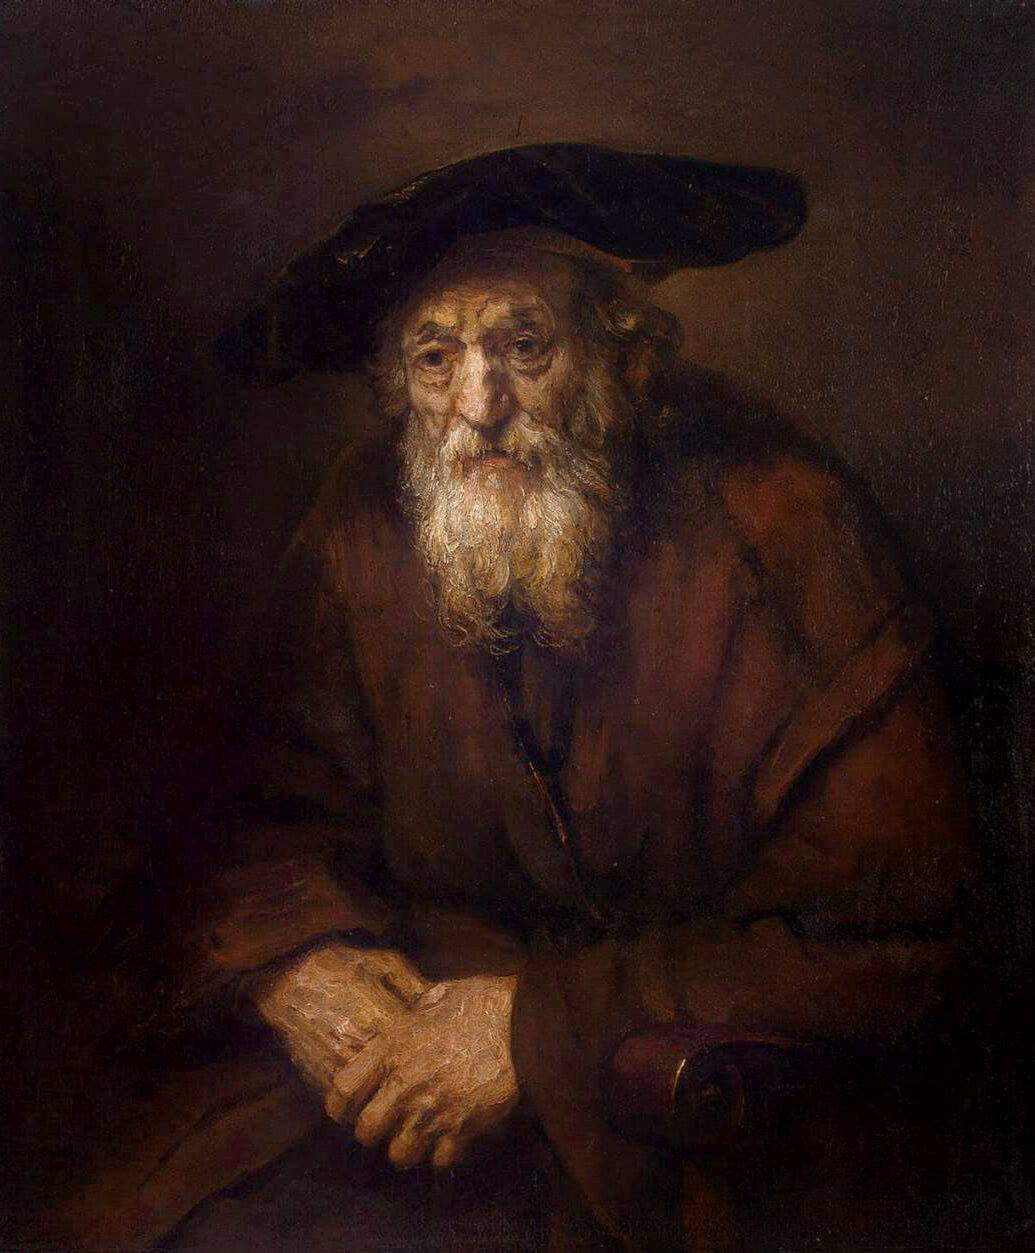 Rembrandt - Portrait of an Old Jew - 1654